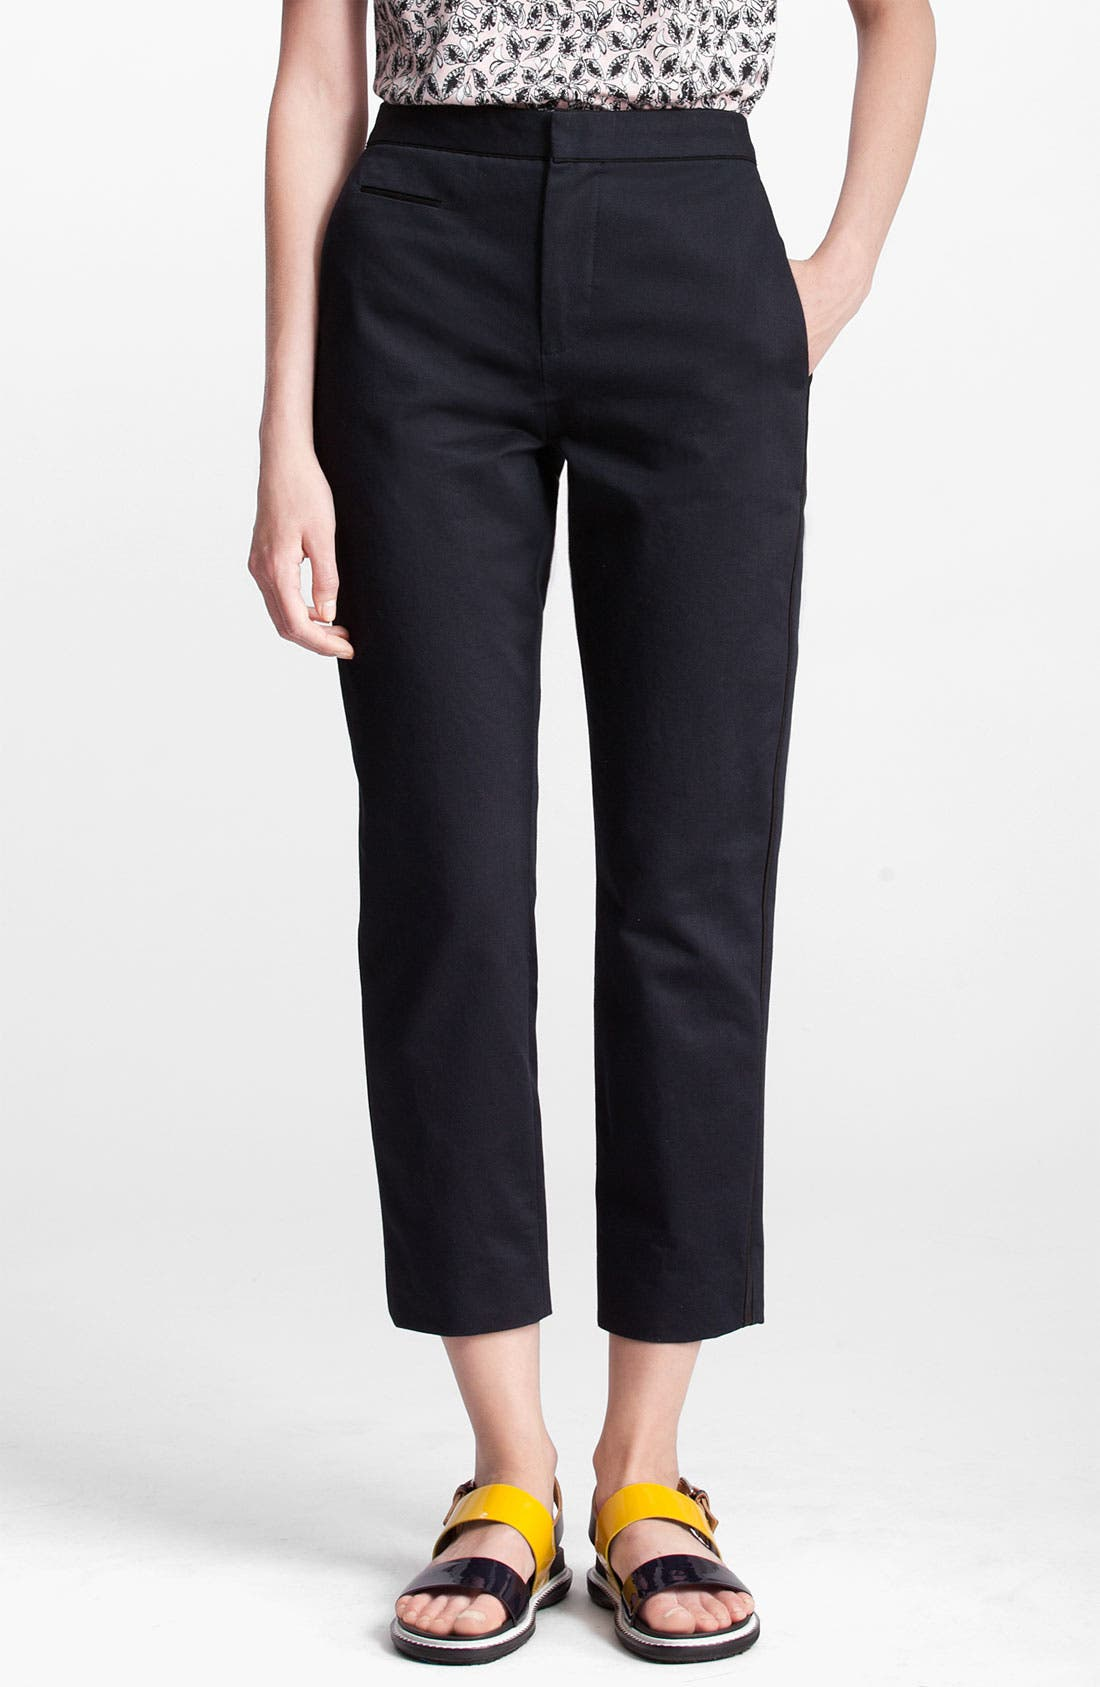 Main Image - Marni Edition Tuxedo Trim Crop Pants